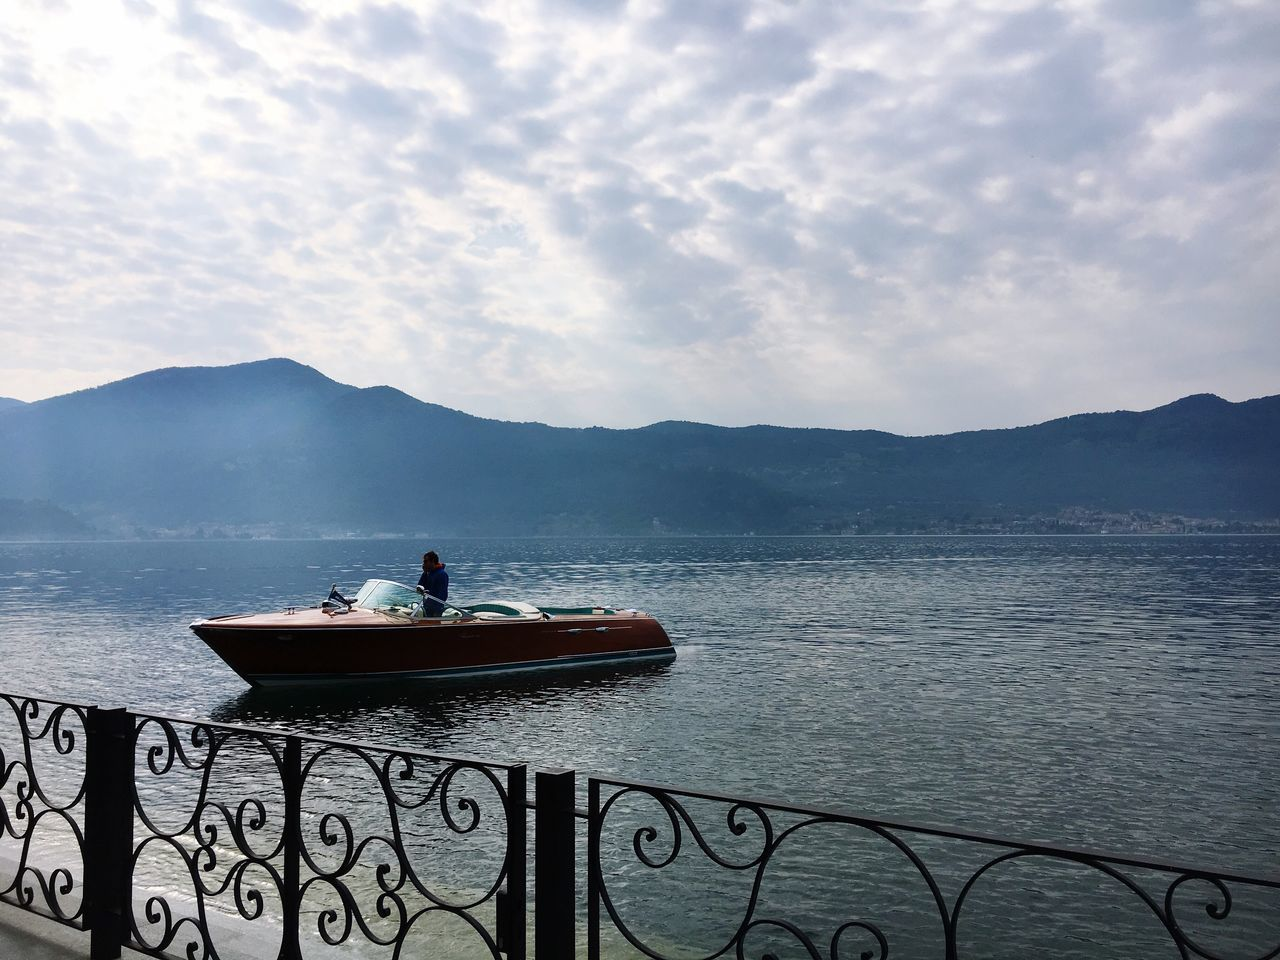 Arriva. Water Mountain Sky Cloud - Sky Tranquility Scenics Beauty In Nature Nature One Person Outdoors Sea Real People Men Mountain Range Day Nautical Vessel People Boat Speedboat Riva  Old Boat Lake